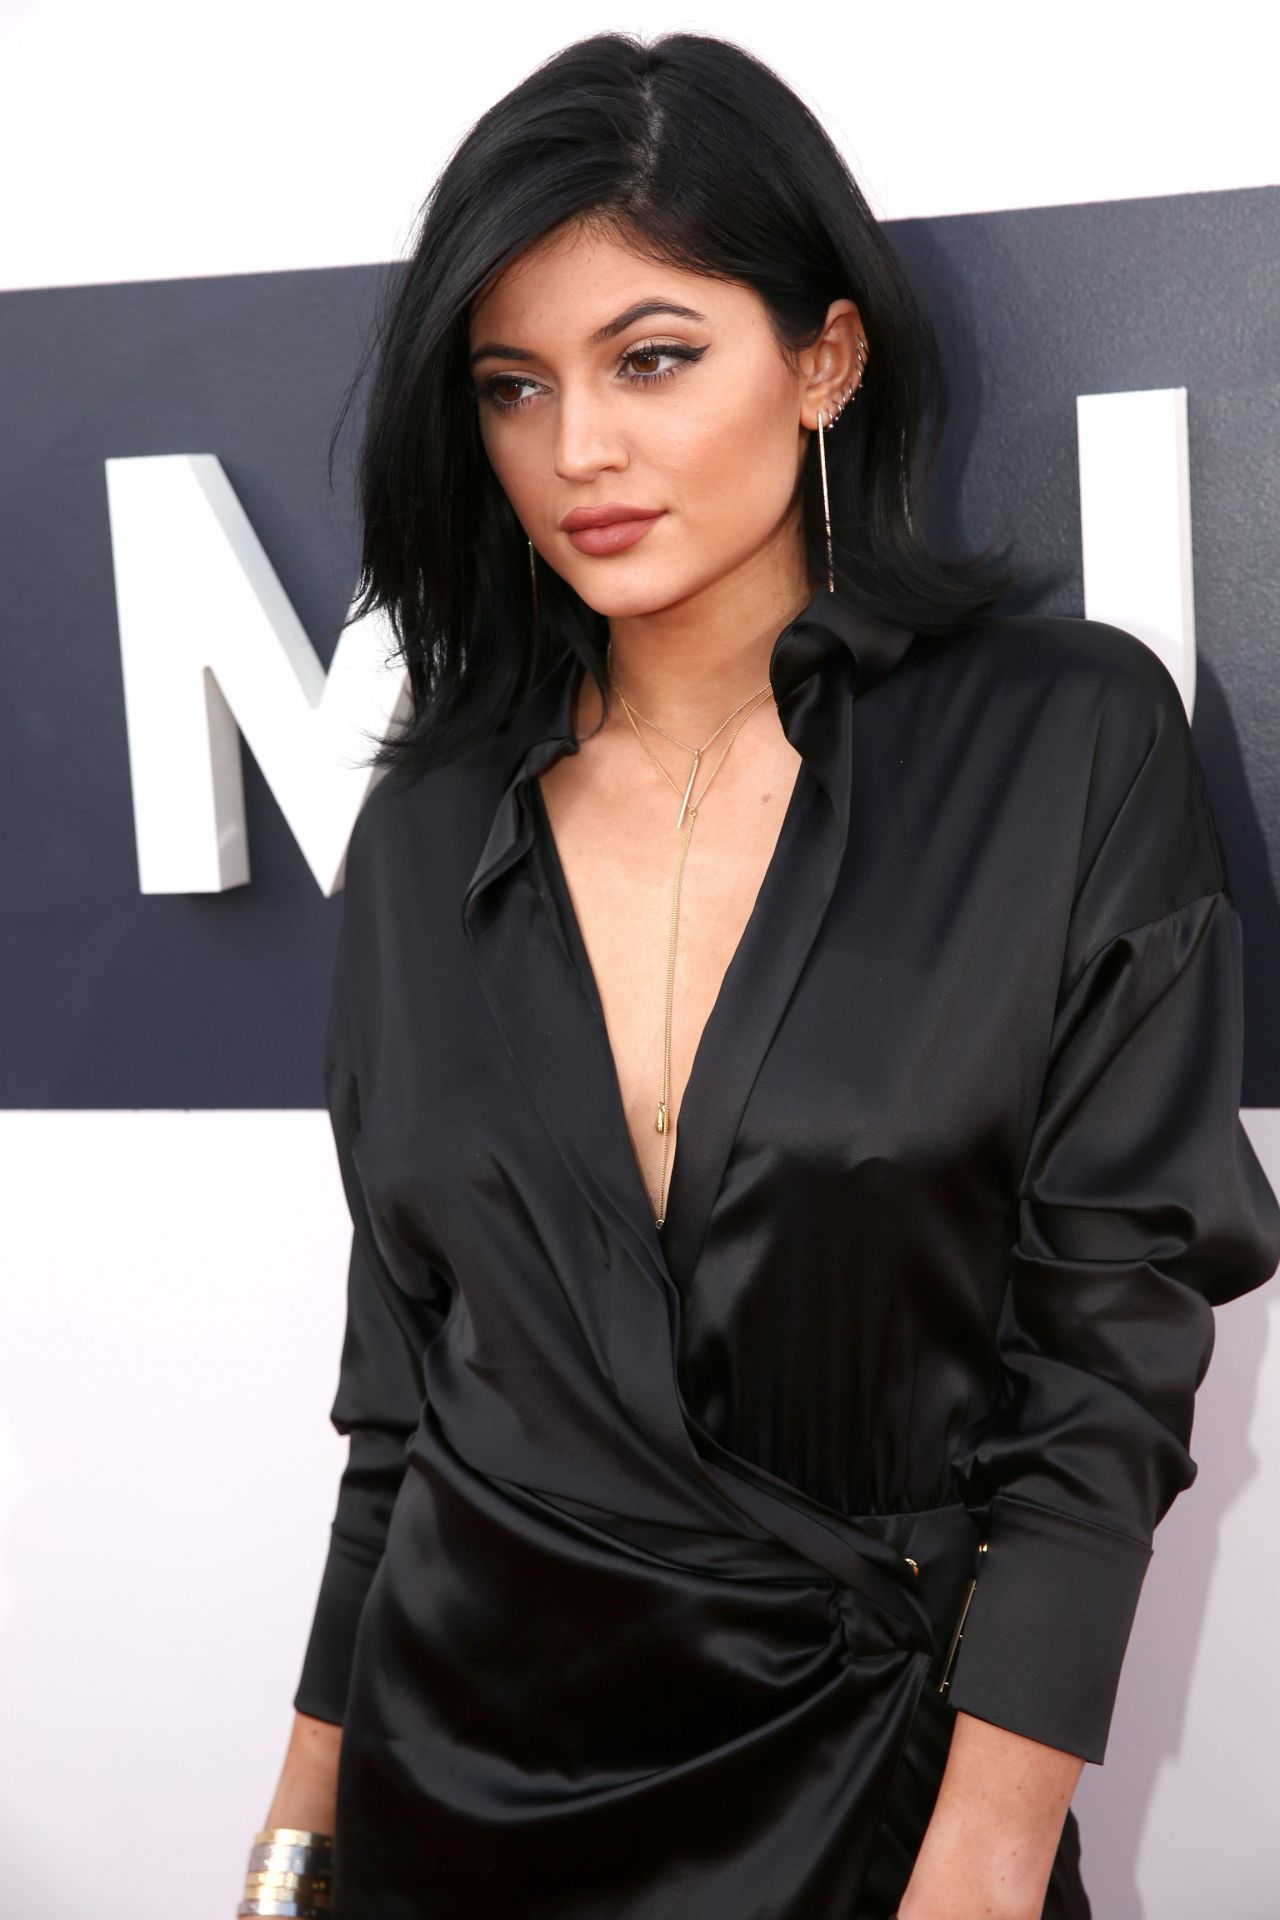 Kylie Jenner Arrives On The Red Carpet At Our Balmain X H: 2014 MTV Video Music Awards In Inglewood